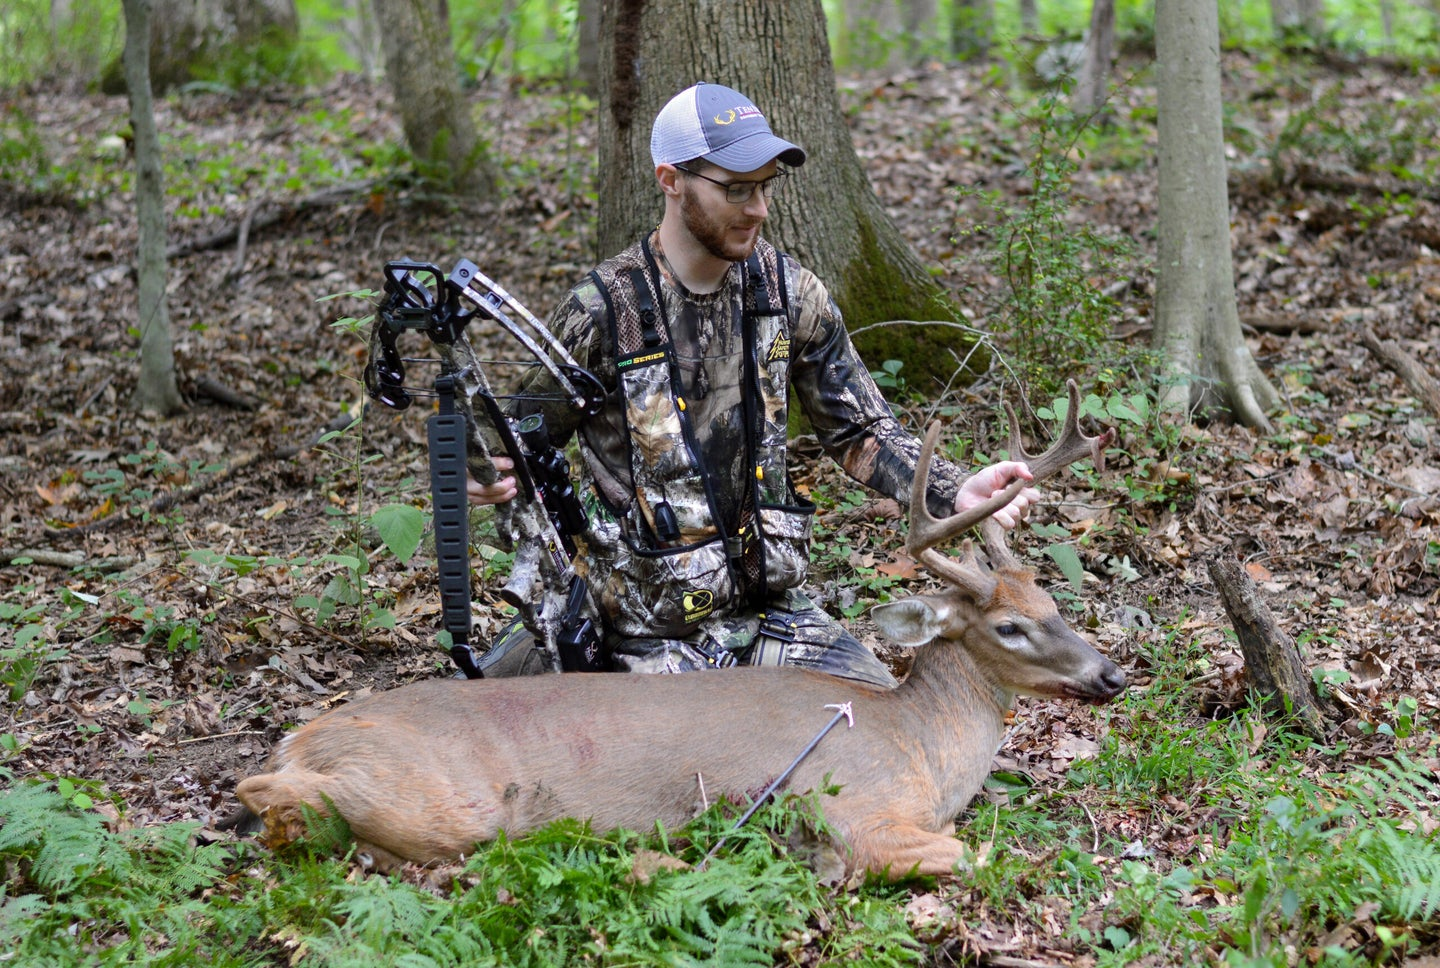 A deer hunter shot a whitetail deer with the Tenpoint Titan M1 crossbow